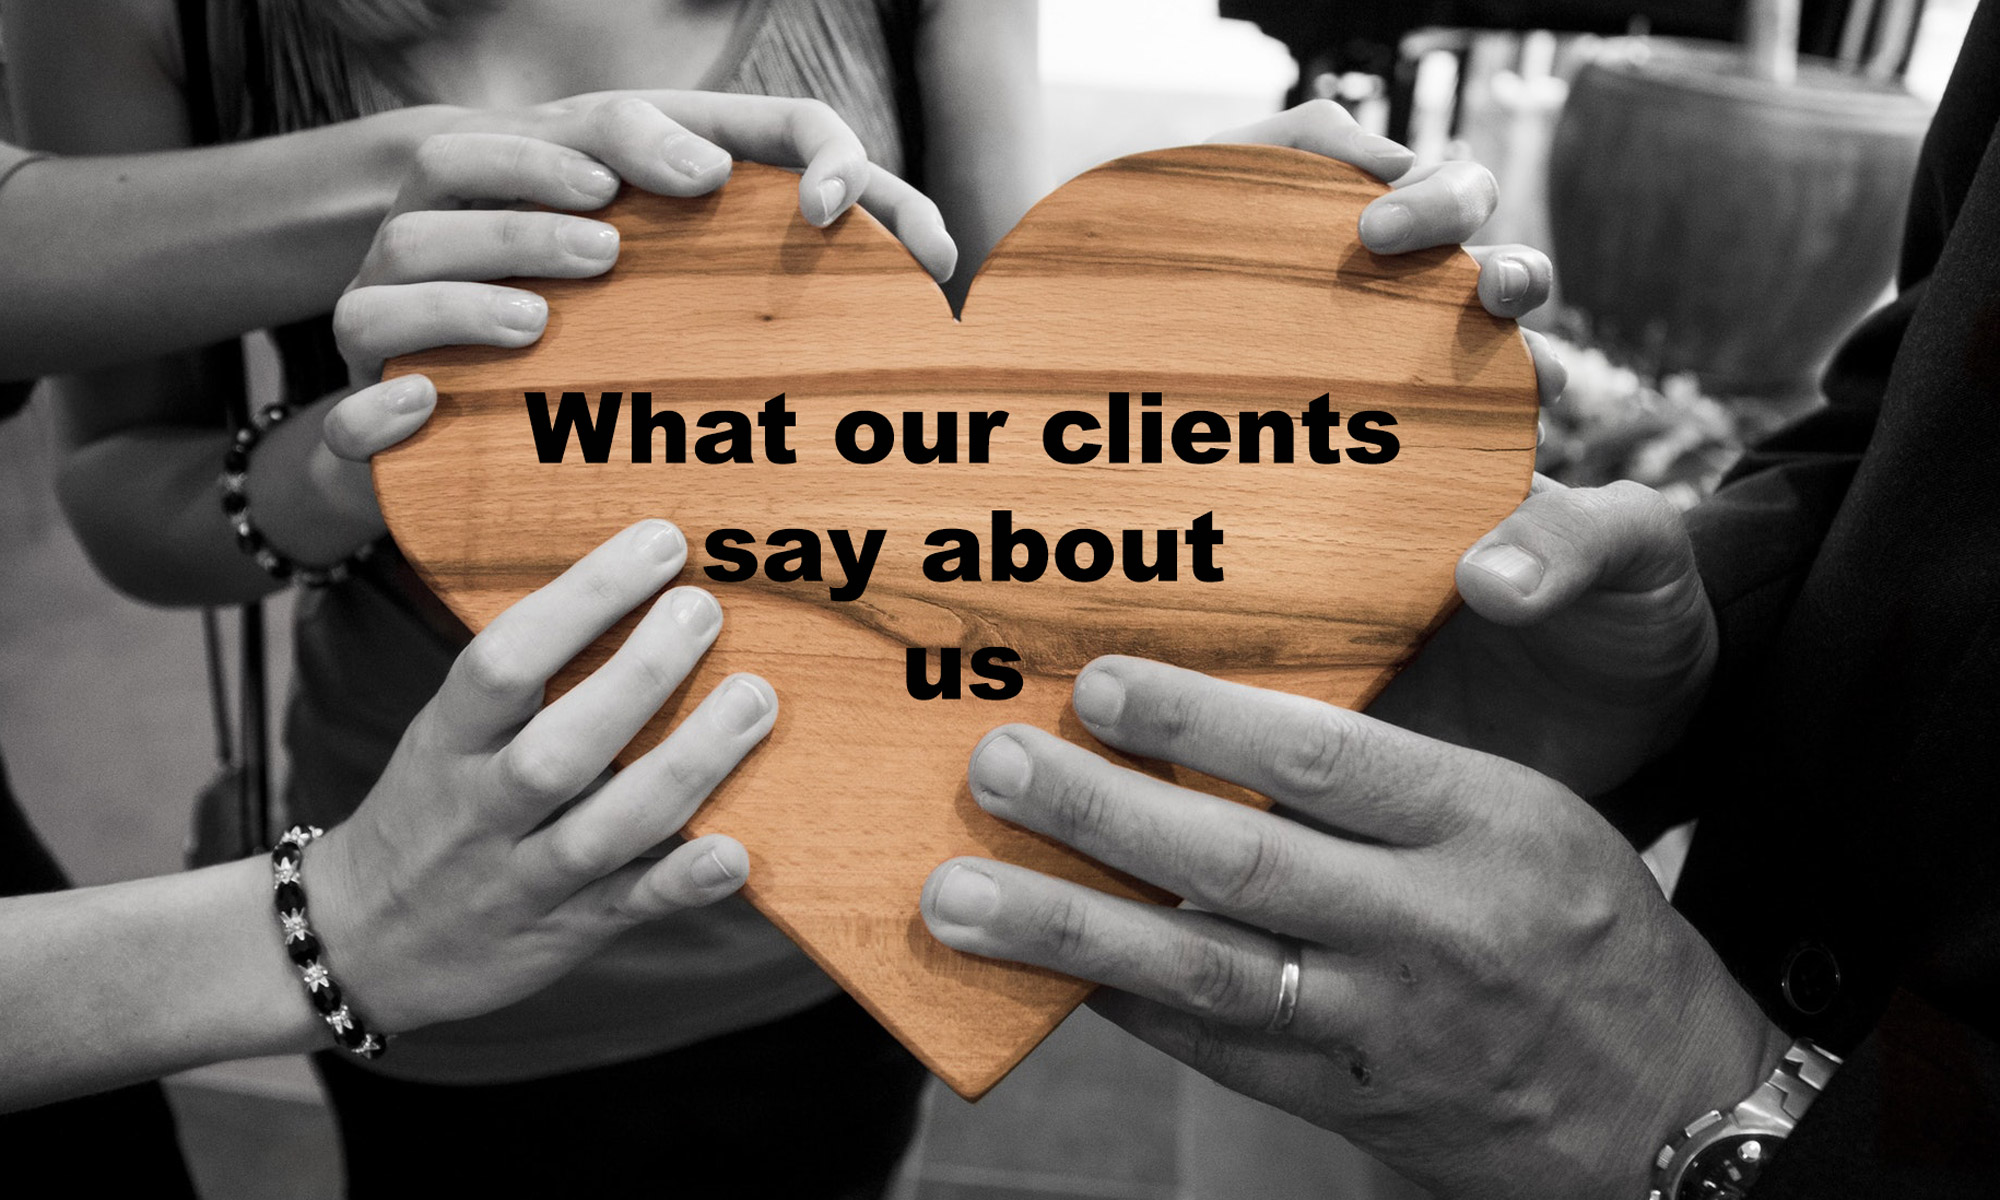 Quotes: What our clients say about us